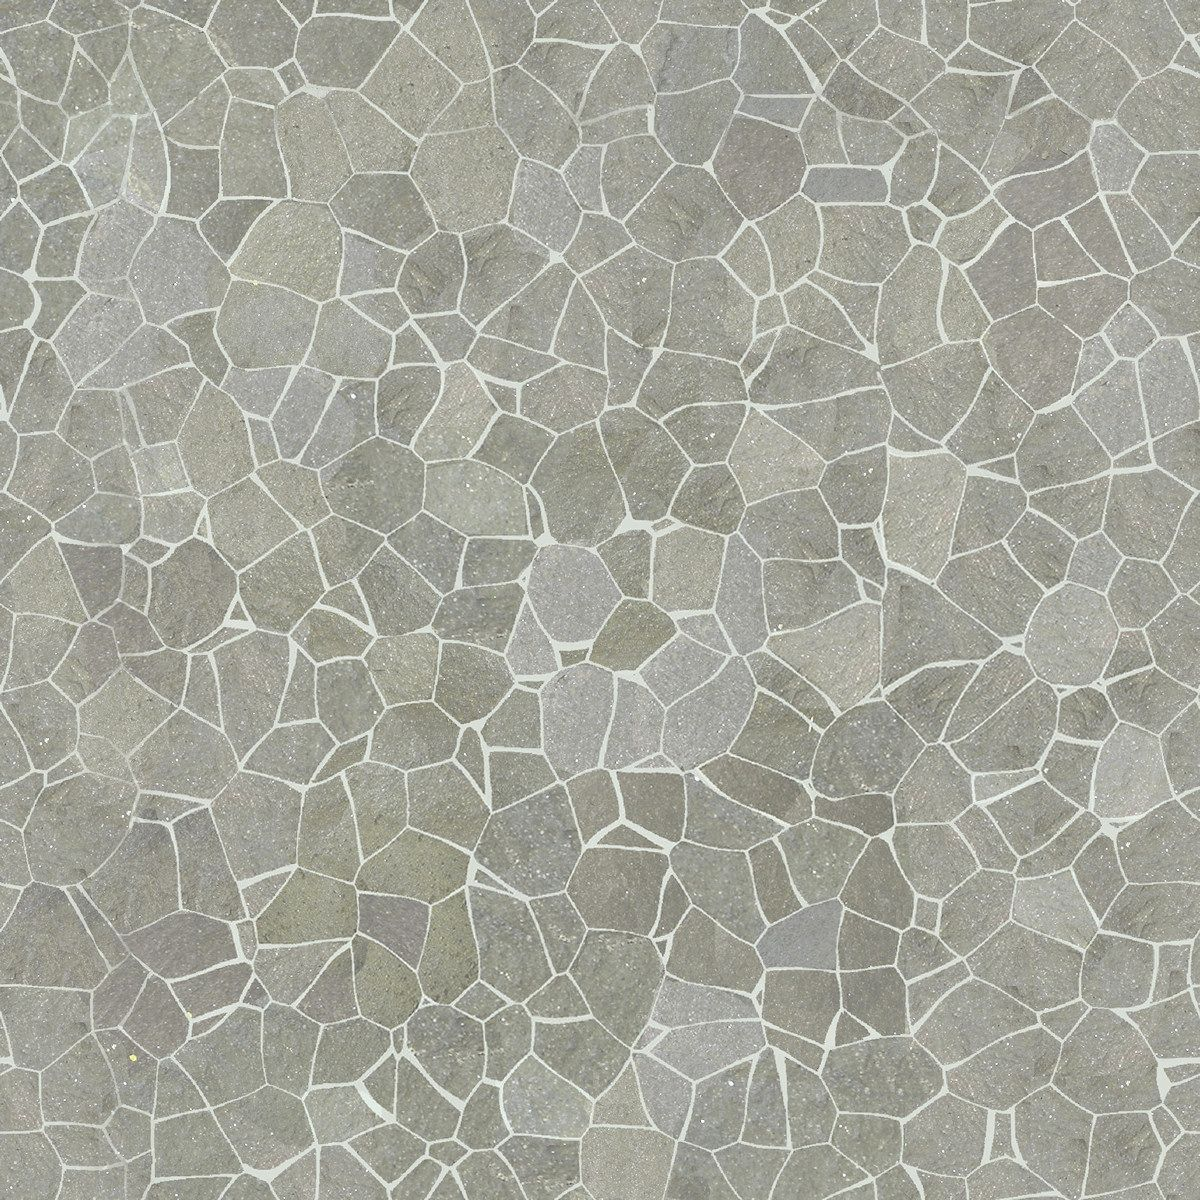 Free seamless textures for uses in 3D architectural renderings software (Sketch up, Photoshop, AutoCad, Autodesk Architectural, Revit)..